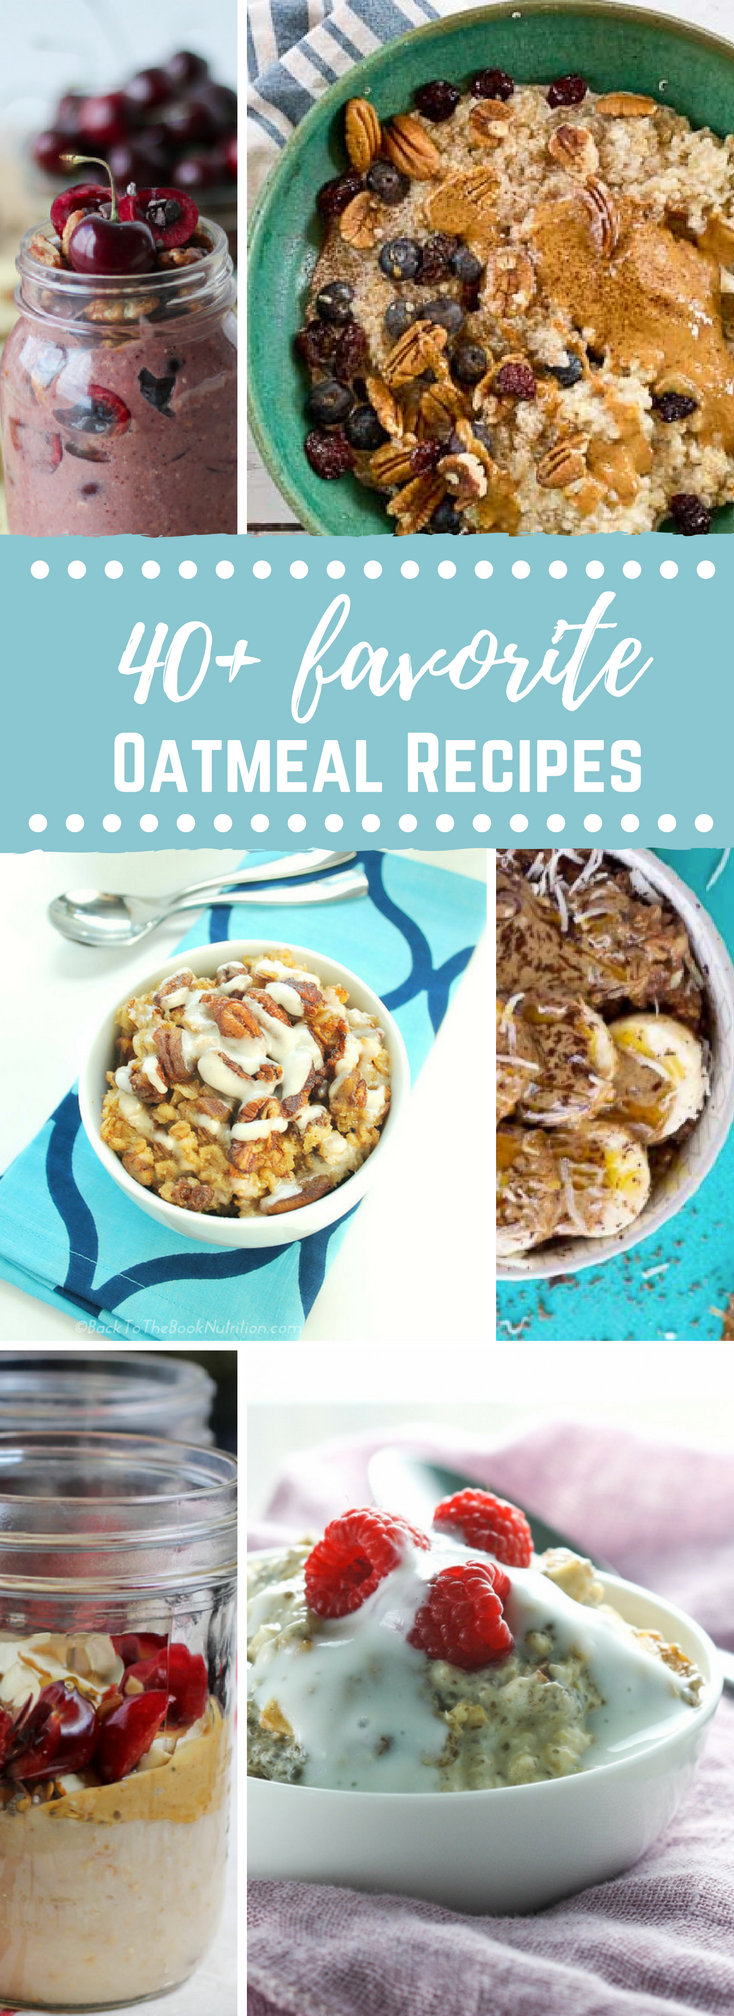 Looking for a yummy oatmeal breakfast?? Give one of these 40 plus favorite oatmeal recipes a try!